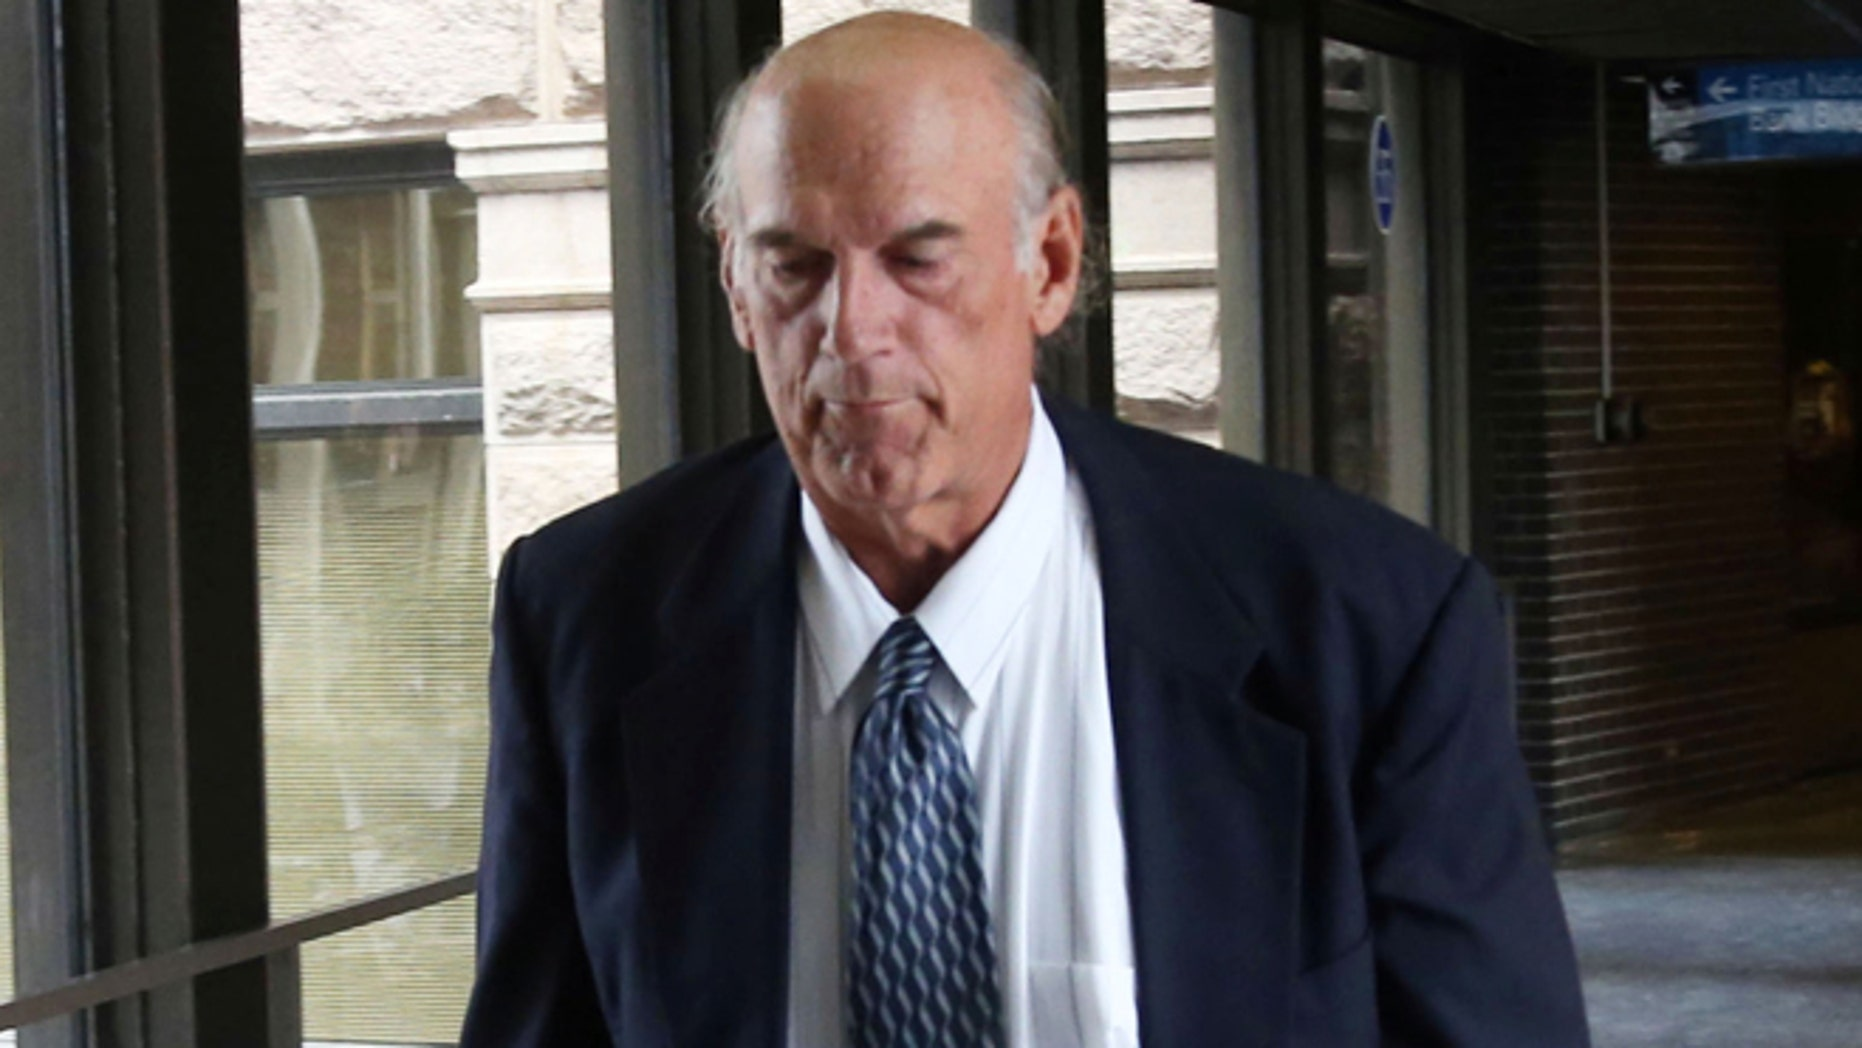 July 8, 2014: Former Minnesota Gov. Jesse Ventura returns from lunch to the federal courthouse in St. Paul, Minn., the first day of a trial in a lawsuit Ventura filed against the estate of the late former Navy SEAL Chris Kyle. Ventura filed the defamation lawsuit claiming that Kyle'ss account of a bar fight in a book he wrote was false.